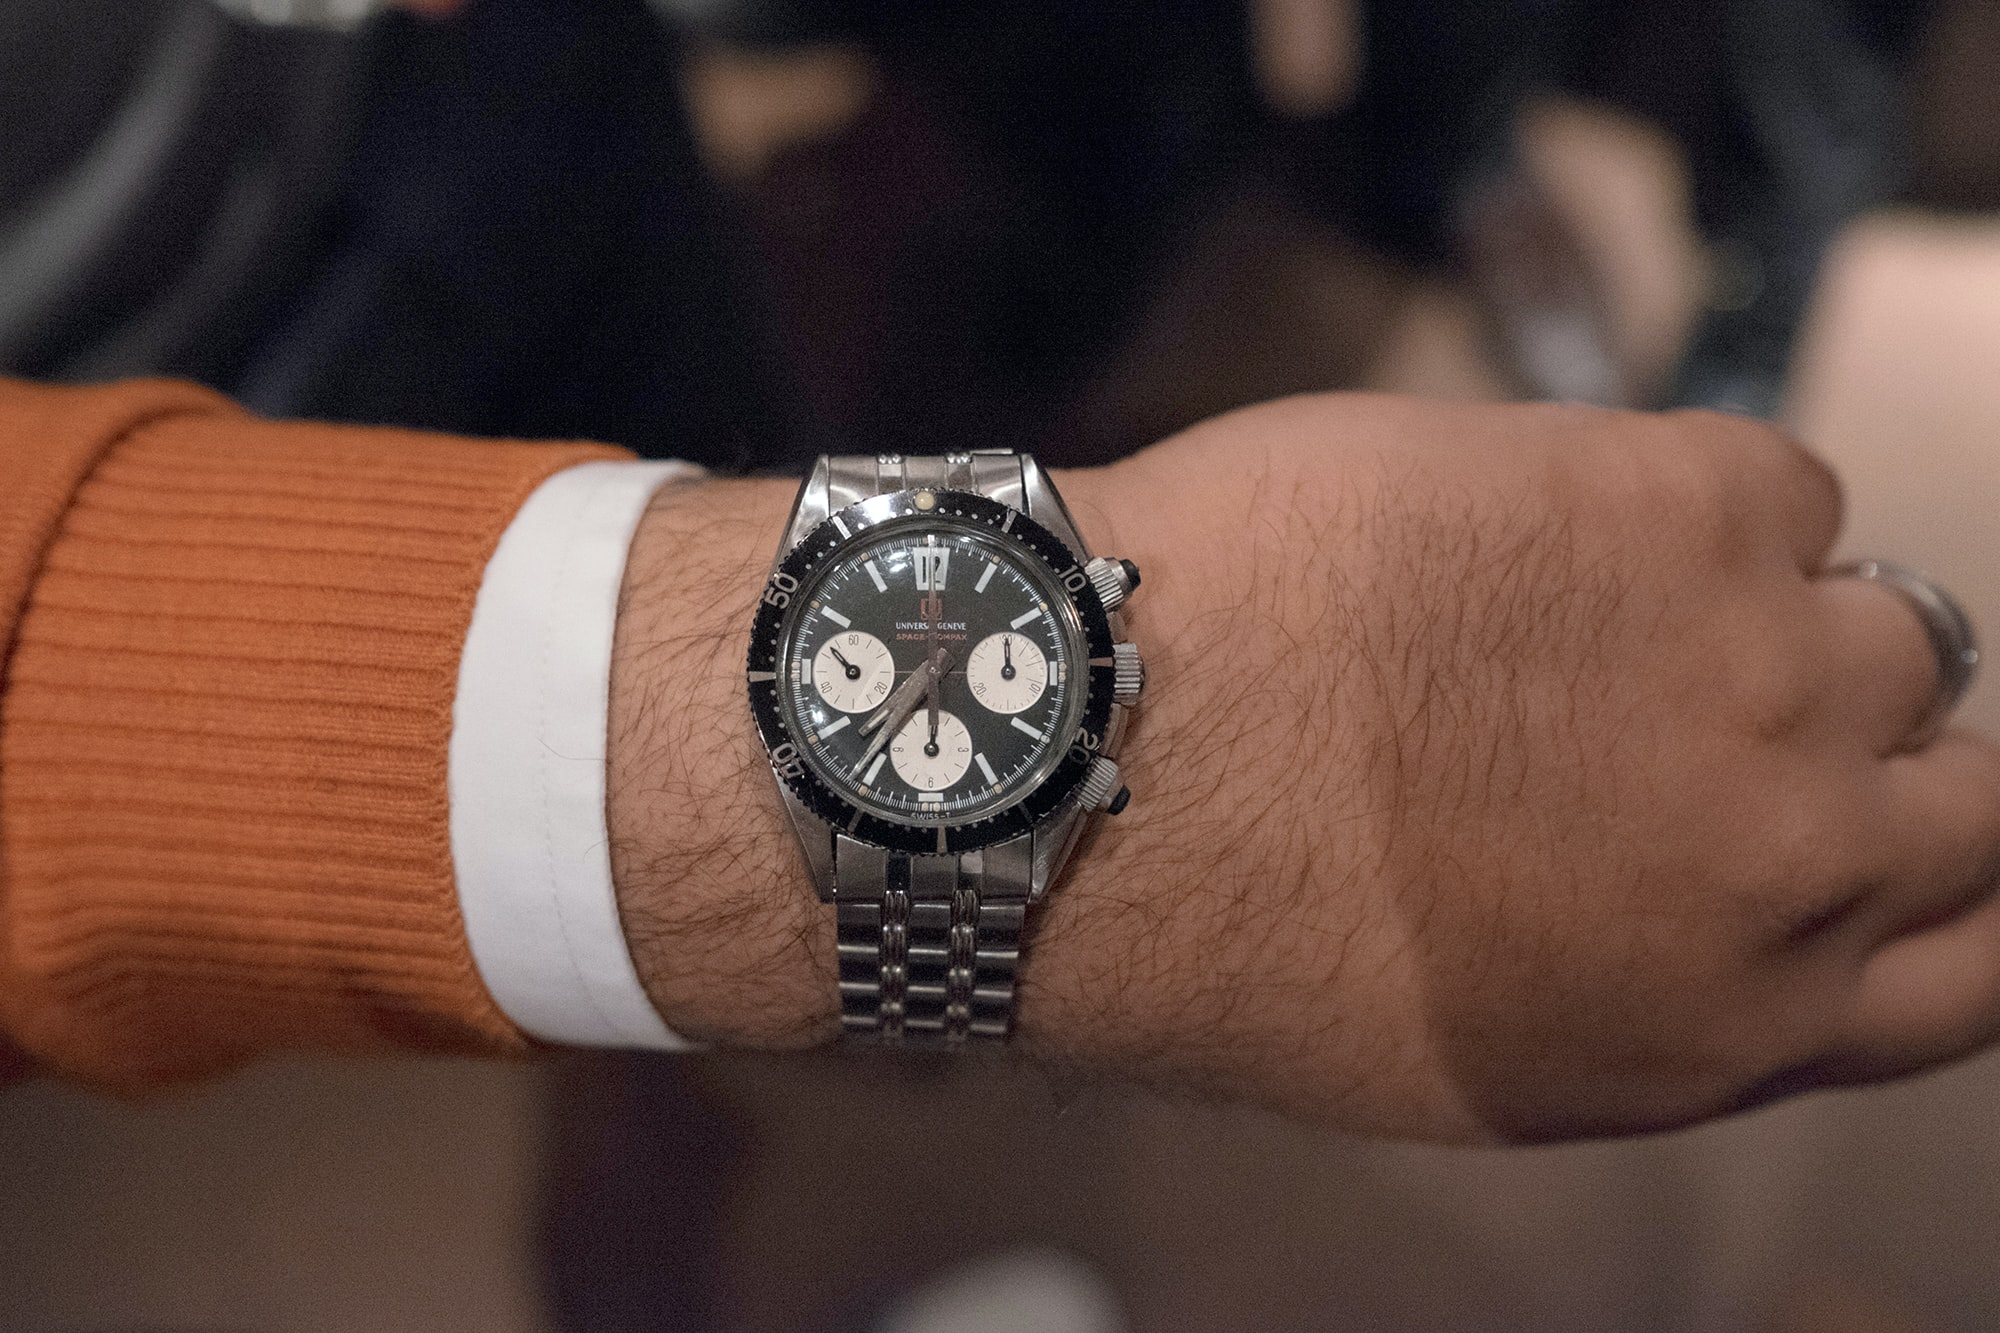 Photo Report: Watch Spotting At The HODINKEE Meet-Up In London (Plus Our Holiday 2016 Pop-Up At Harrods) Photo Report: Watch Spotting At The HODINKEE Meet-Up In London (Plus Our Holiday 2016 Pop-Up At Harrods) Hodinkee event 29 nov 2016 60